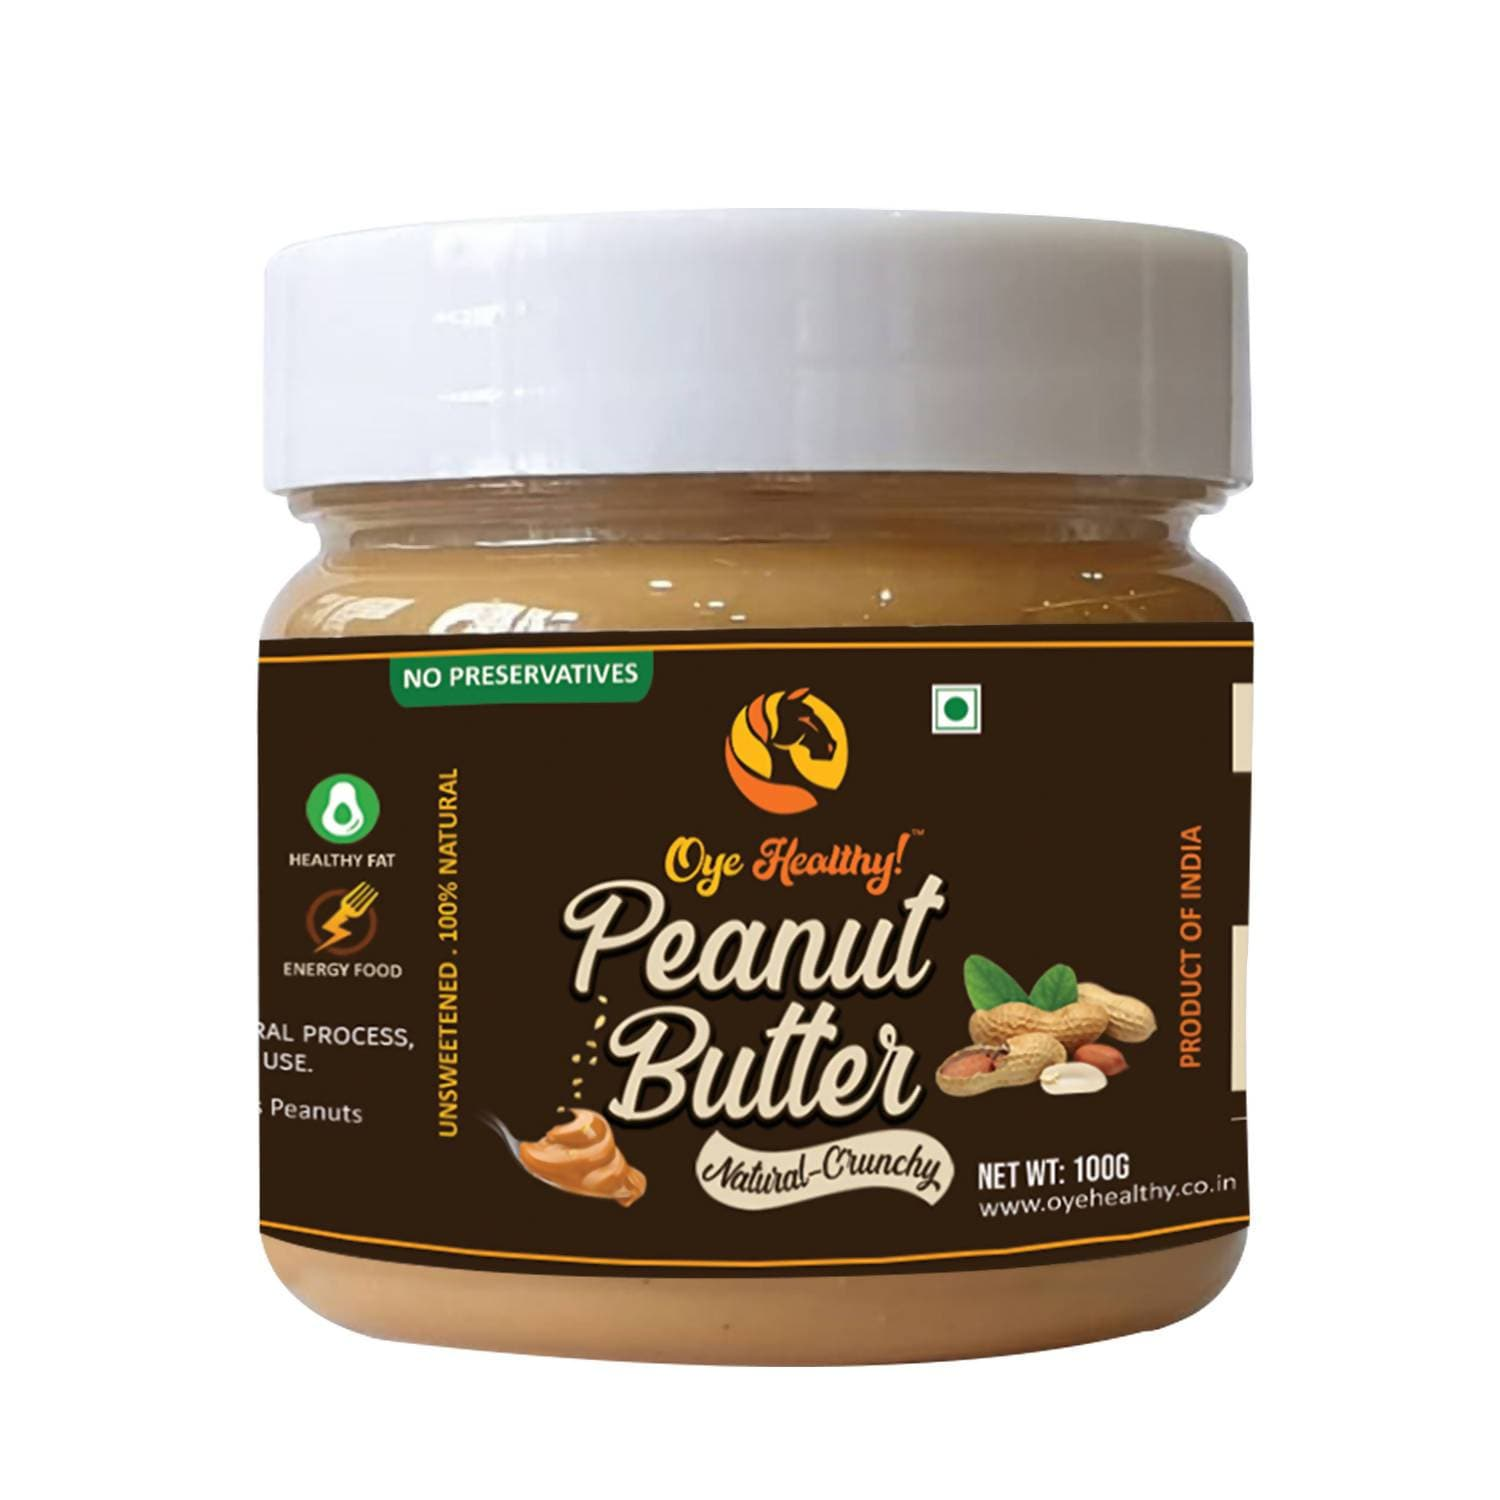 Oye Healthy Peanut Butter Natural Crunchy